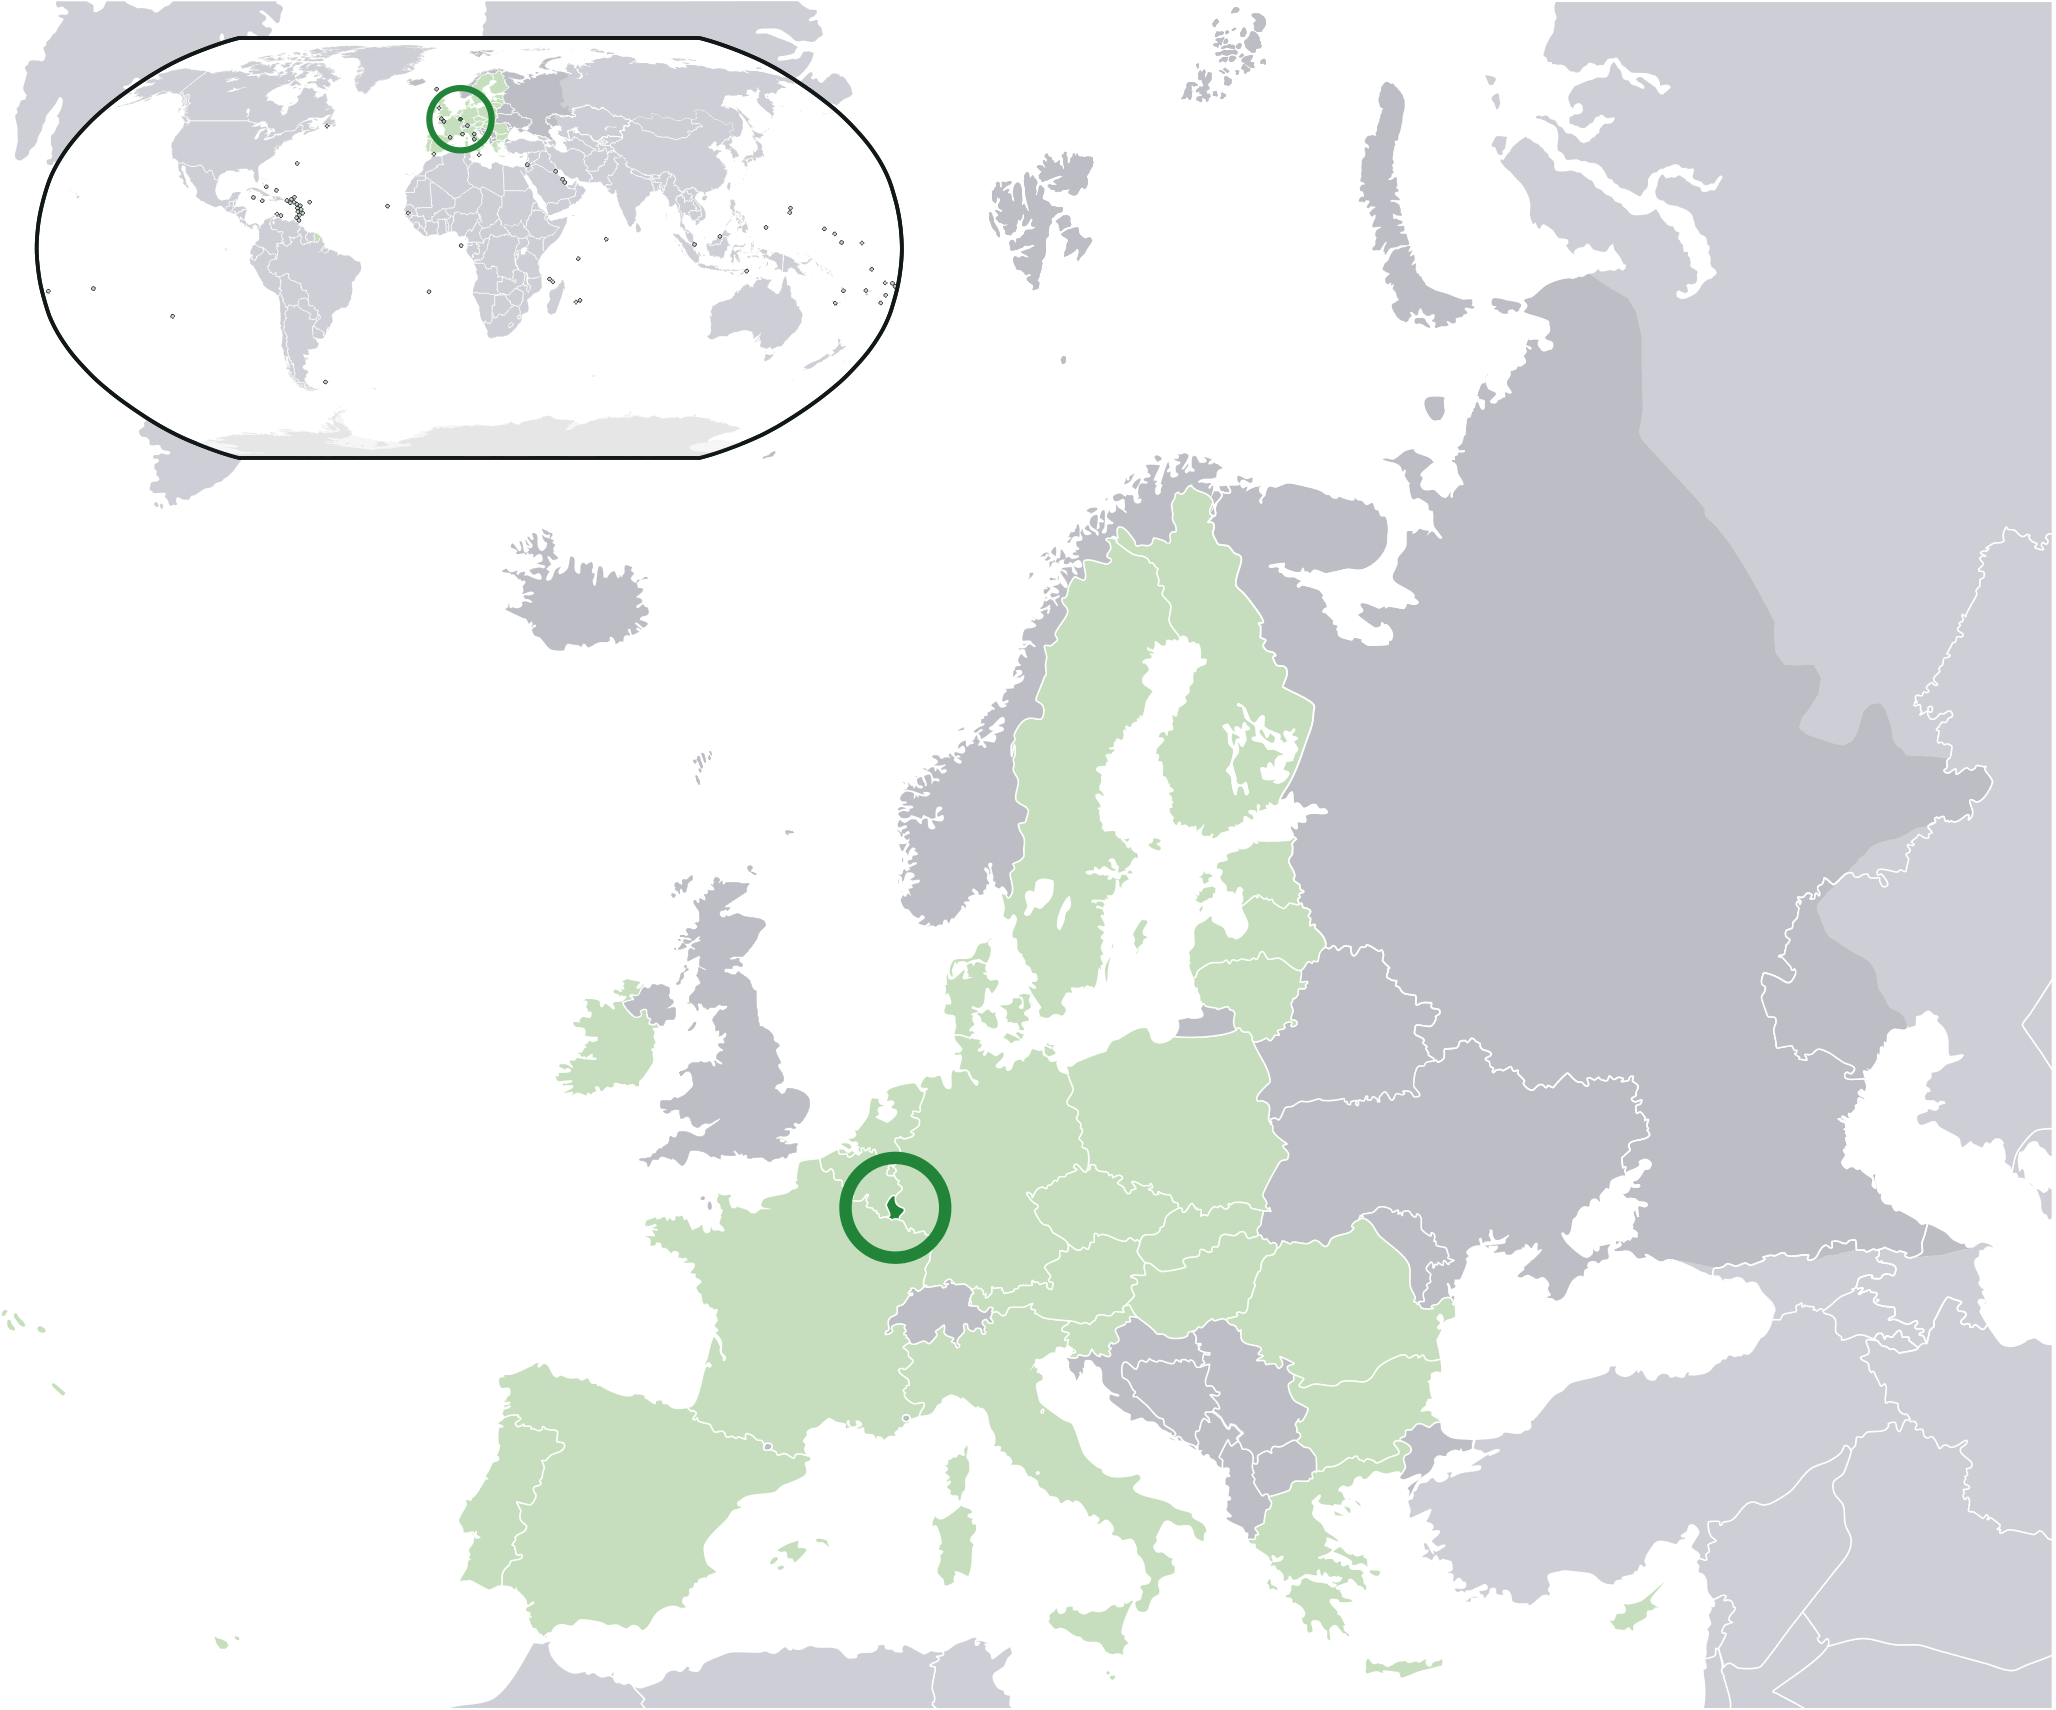 https://i0.wp.com/upload.wikimedia.org/wikipedia/commons/6/6c/Location_Luxembourg_EU_Europe.png